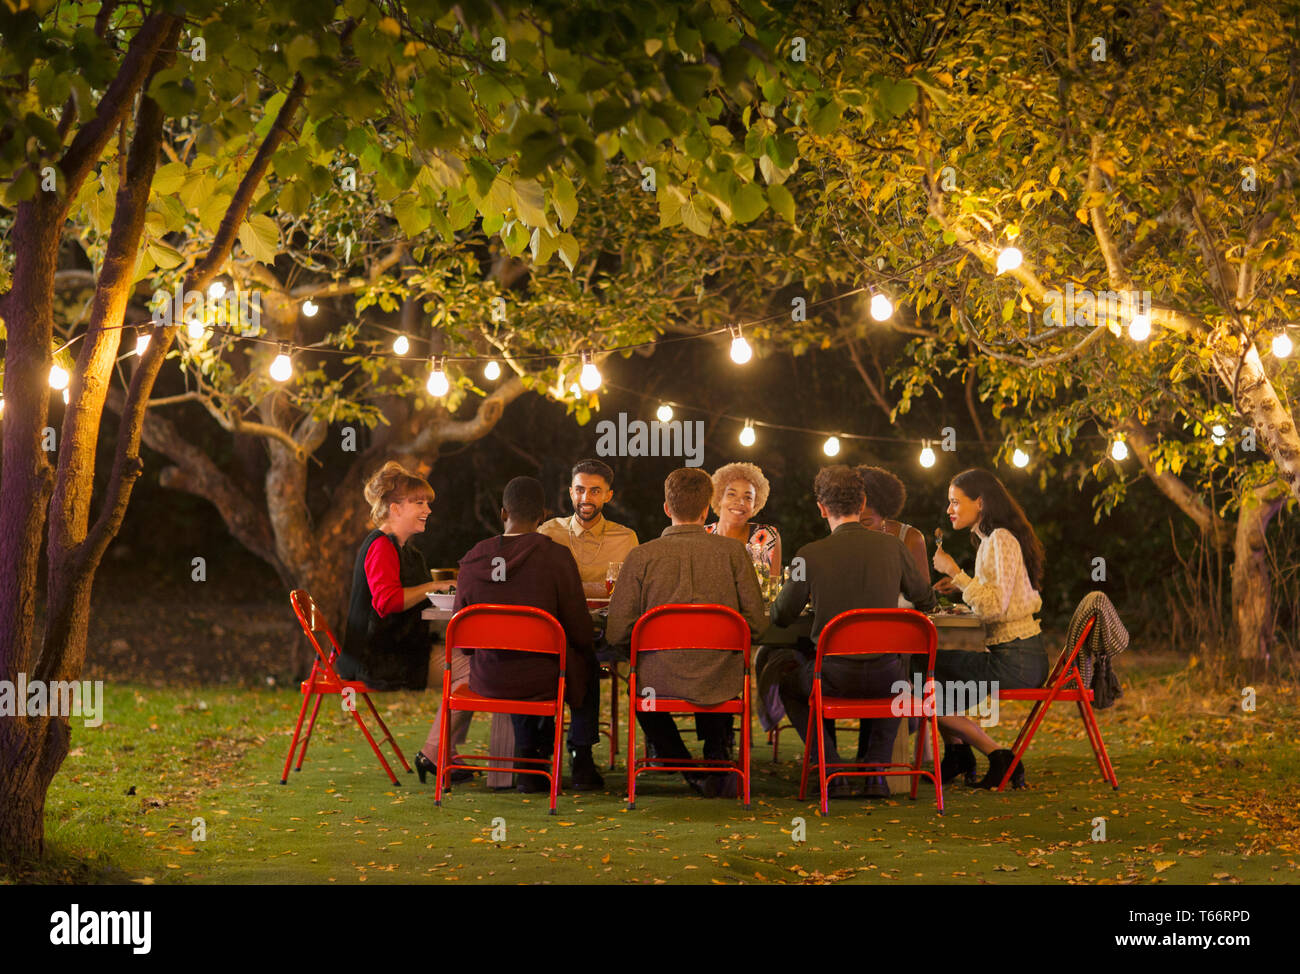 Friends enjoying dinner garden party under trees with fairy lights Stock Photo